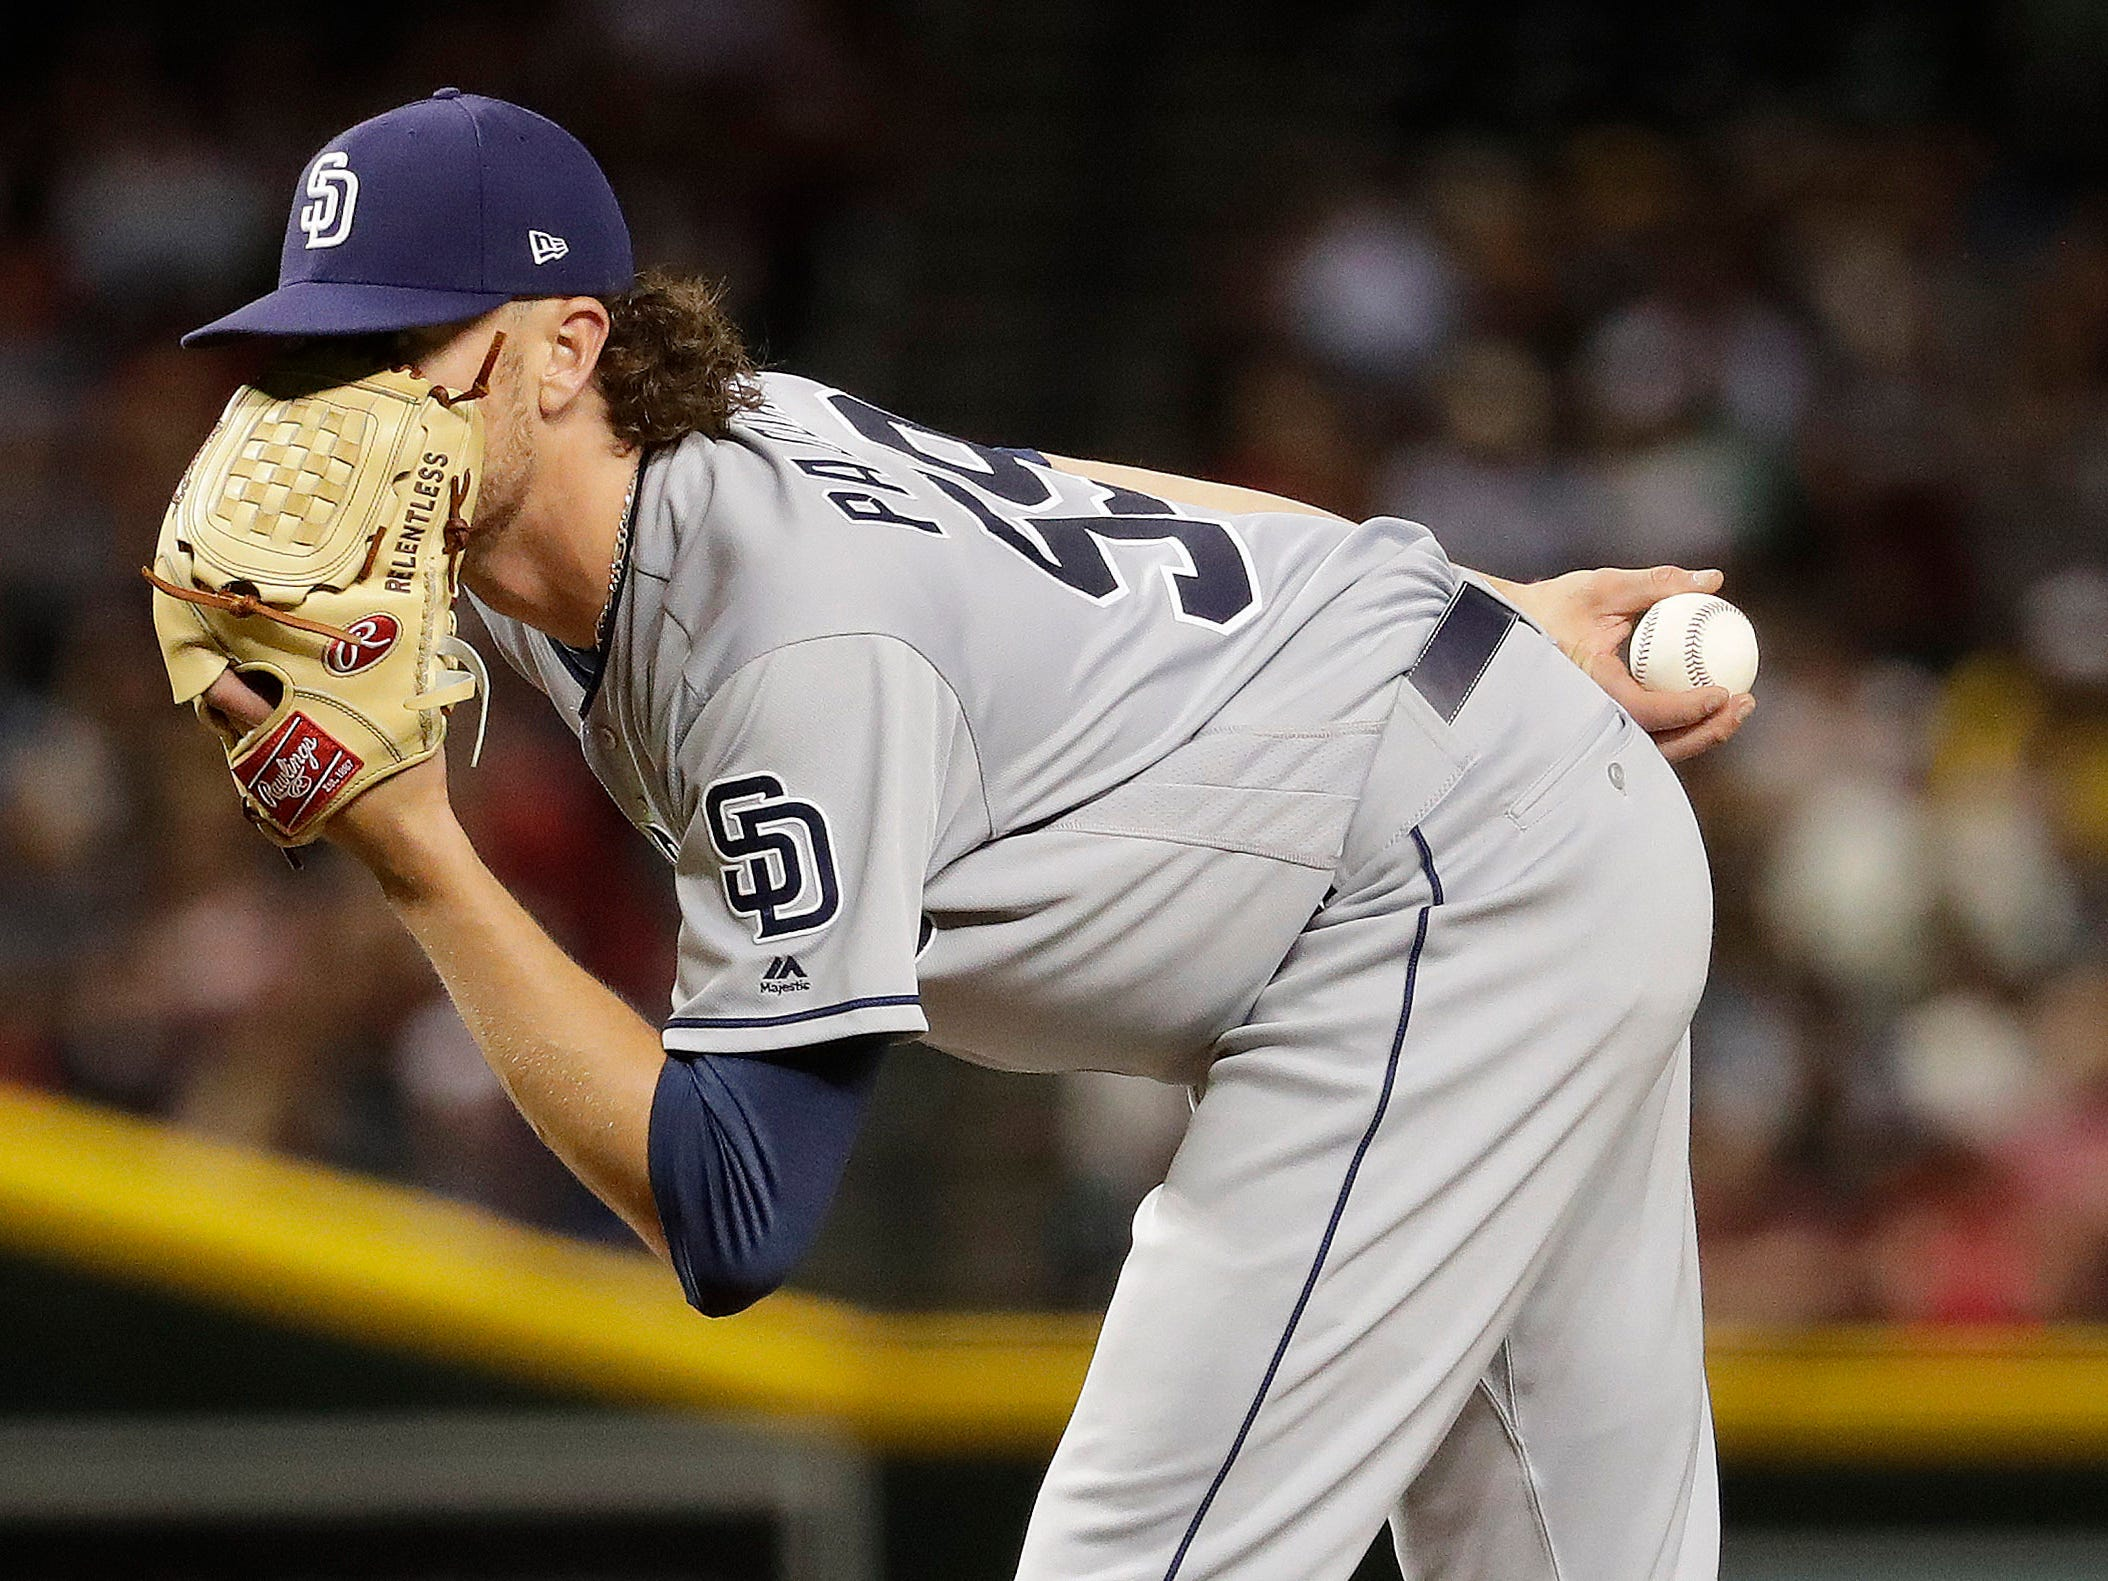 San Diego Padres starting pitcher Chris Paddack looks for the sign during the third inning of a baseball game against the Arizona Diamondbacks, Friday, April 12, 2019, in Phoenix. (AP Photo/Matt York)